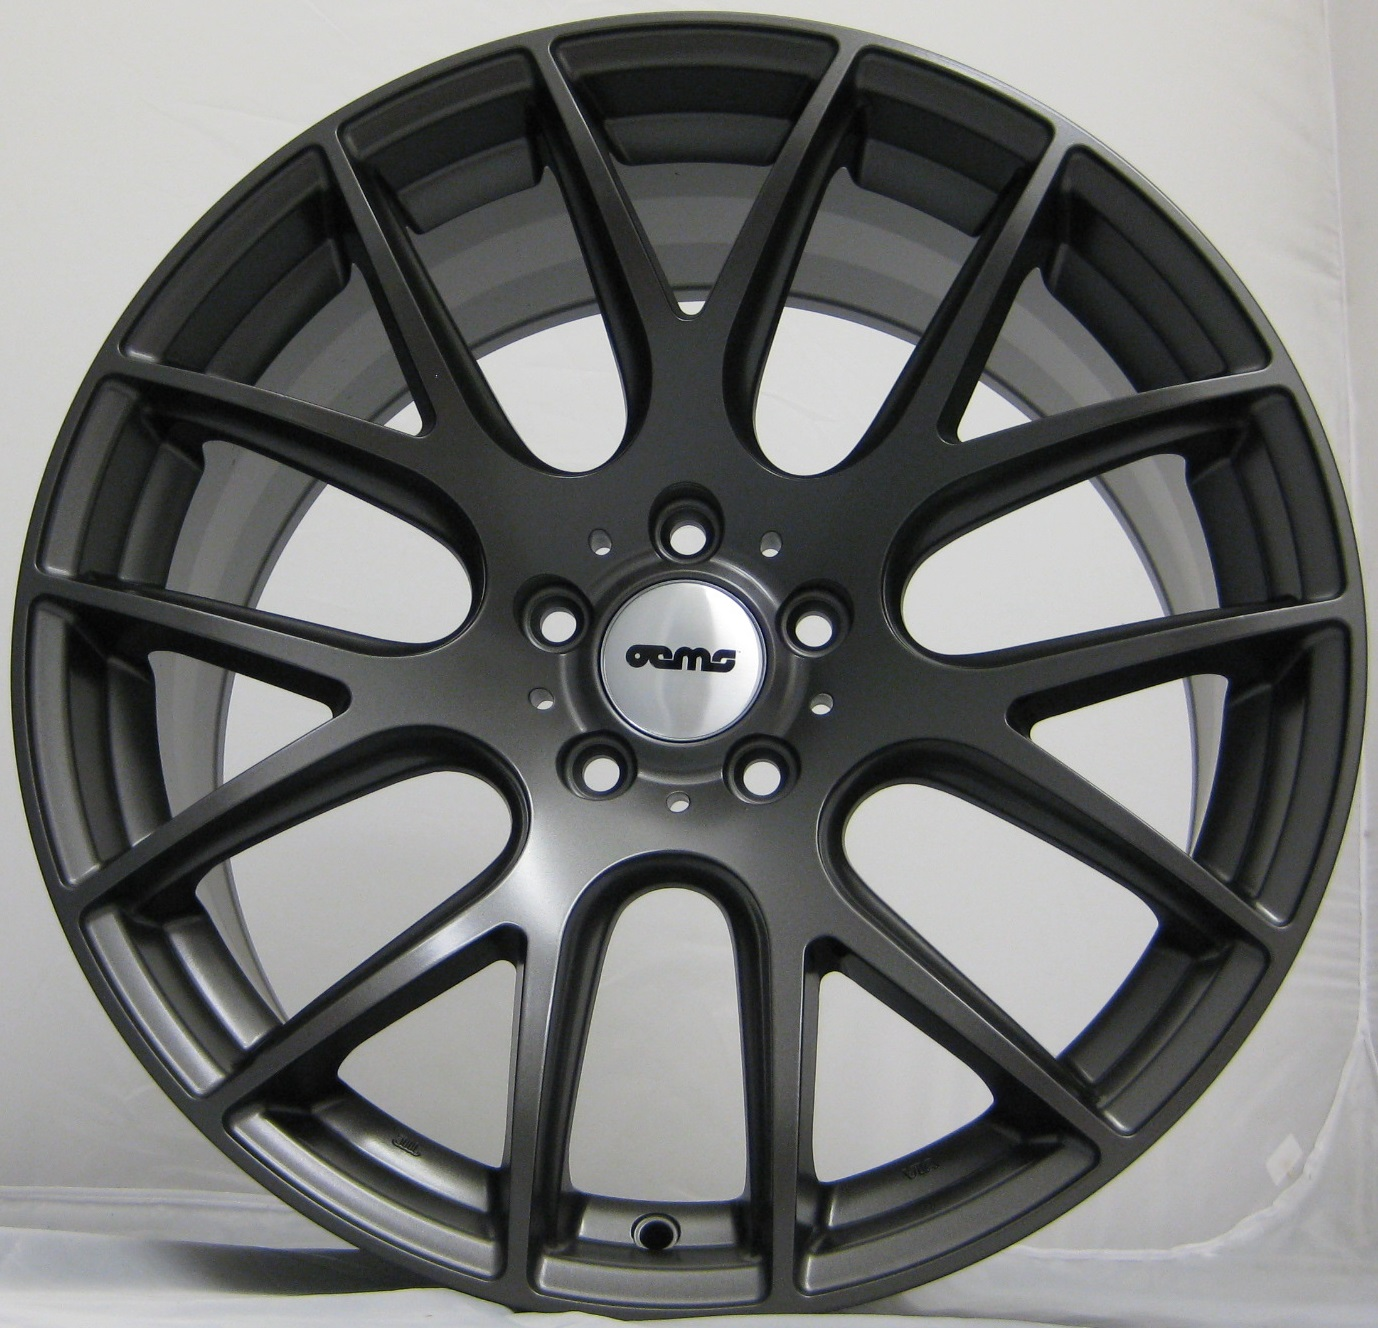 "NEW 18"" OEMS 111 ALLOY WHEELS IN GLOSS GUNMETAL et42"